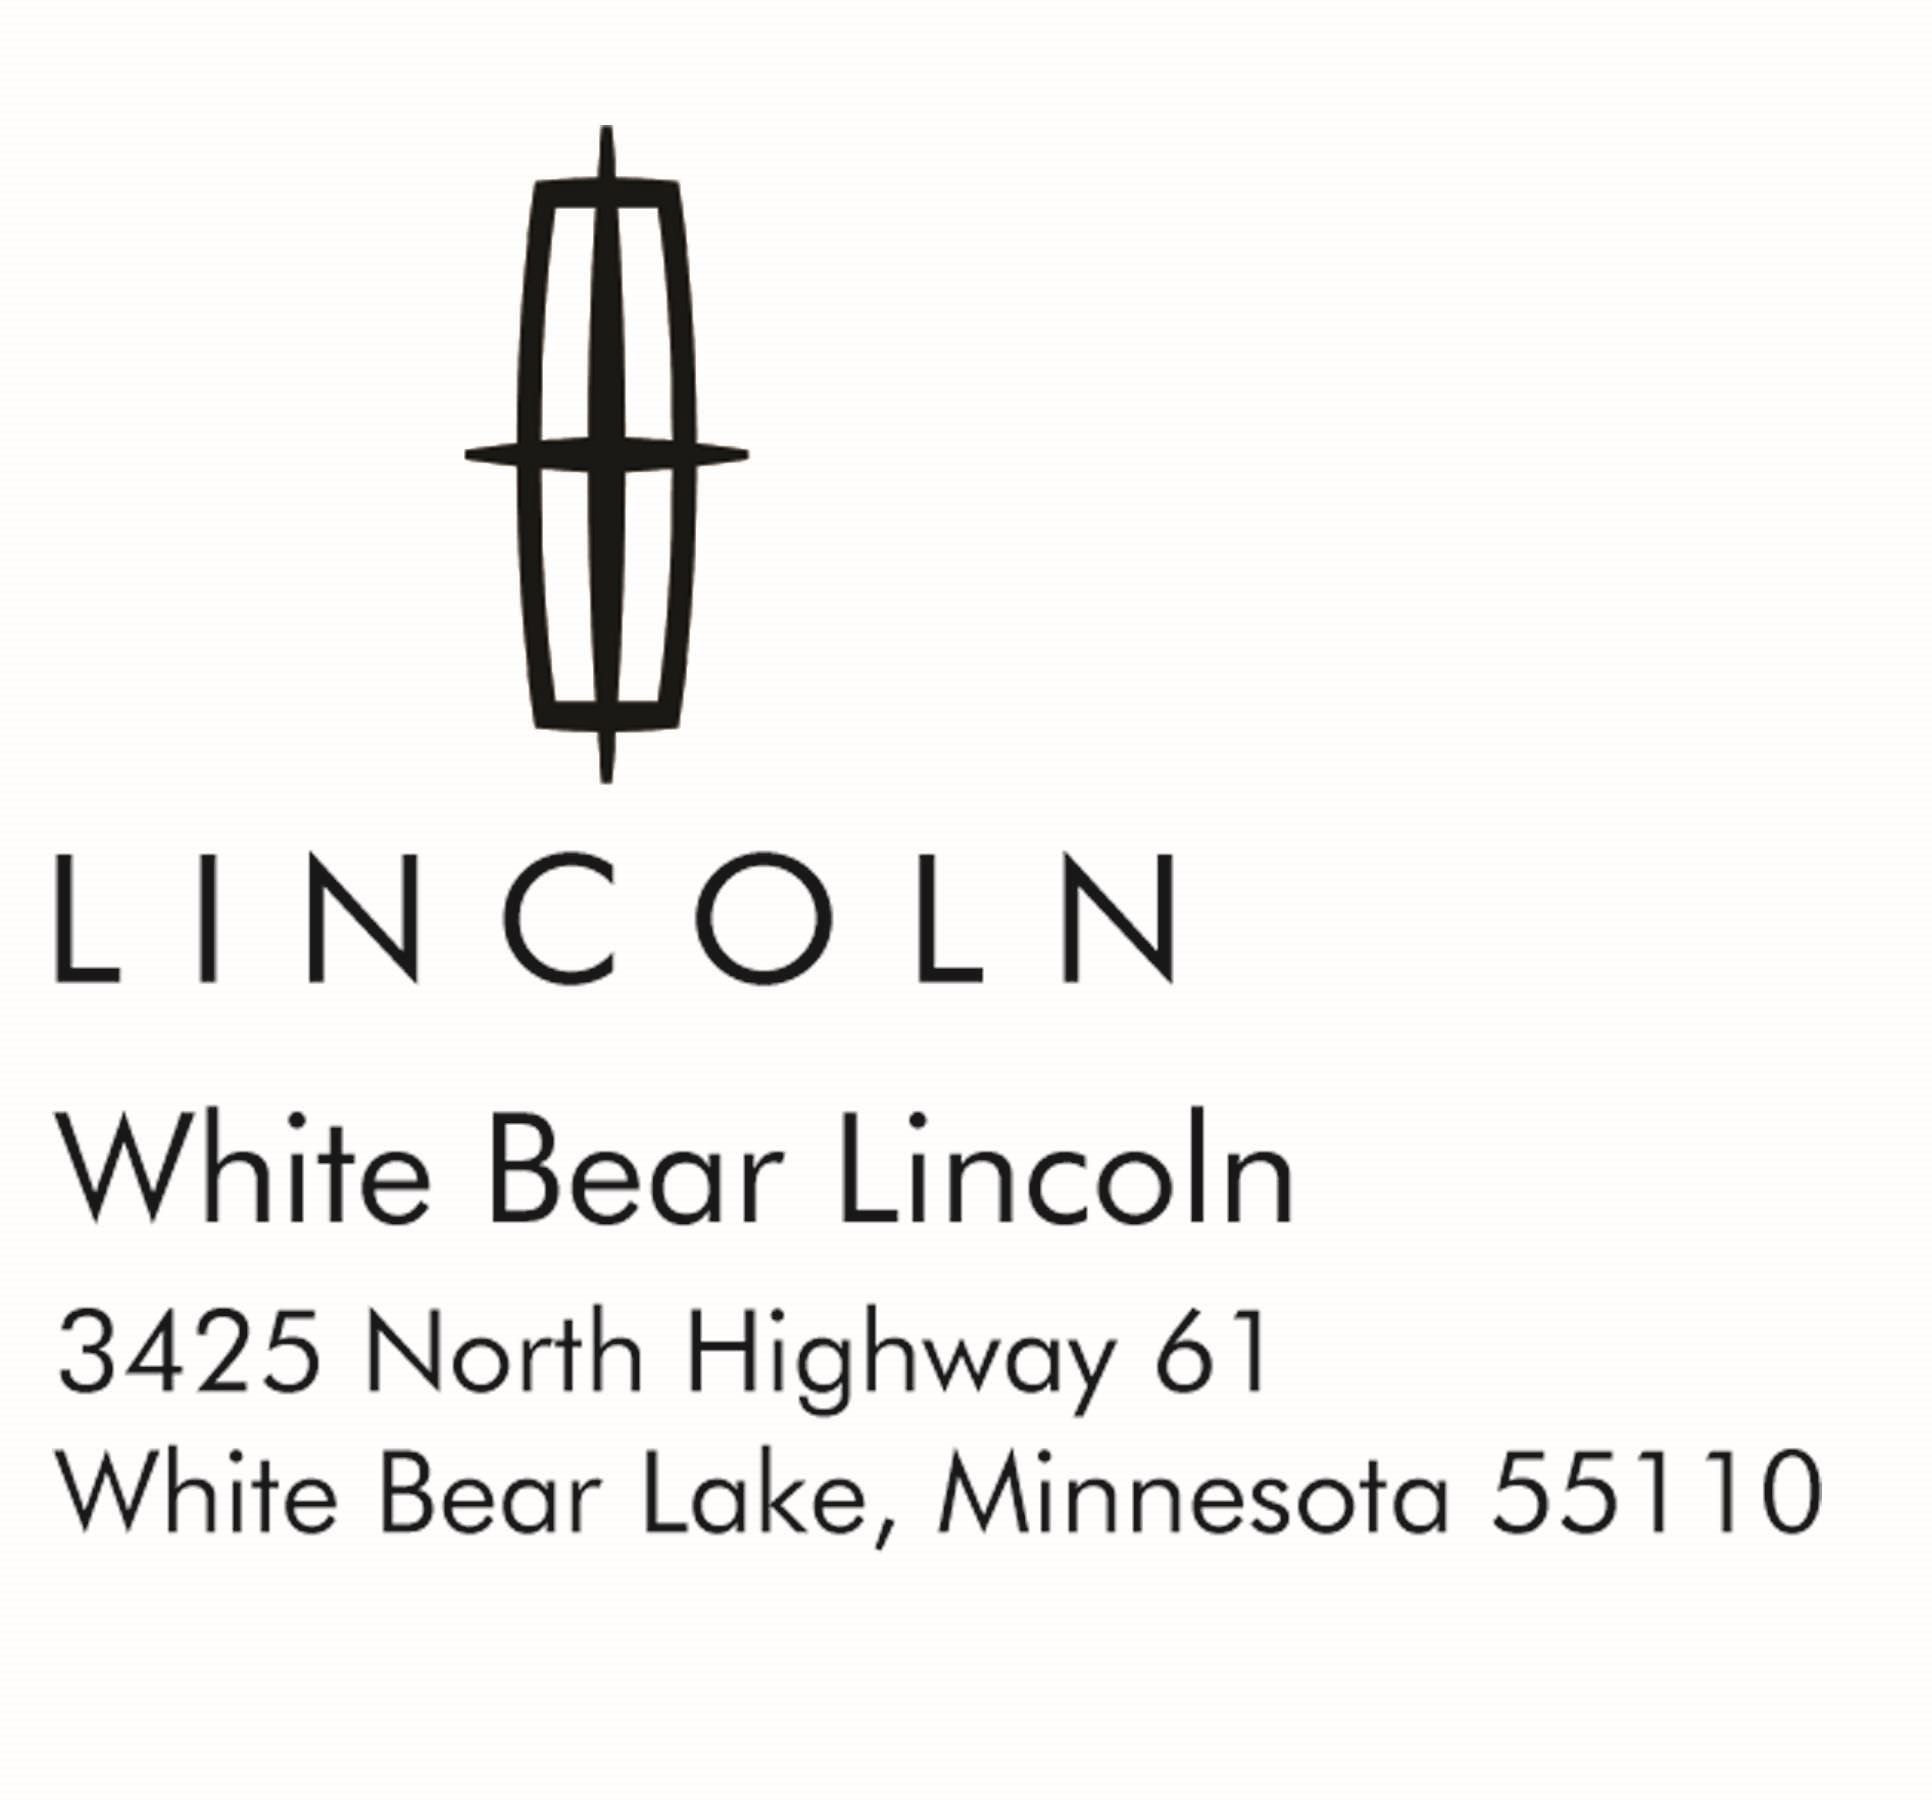 White Bear Lincoln